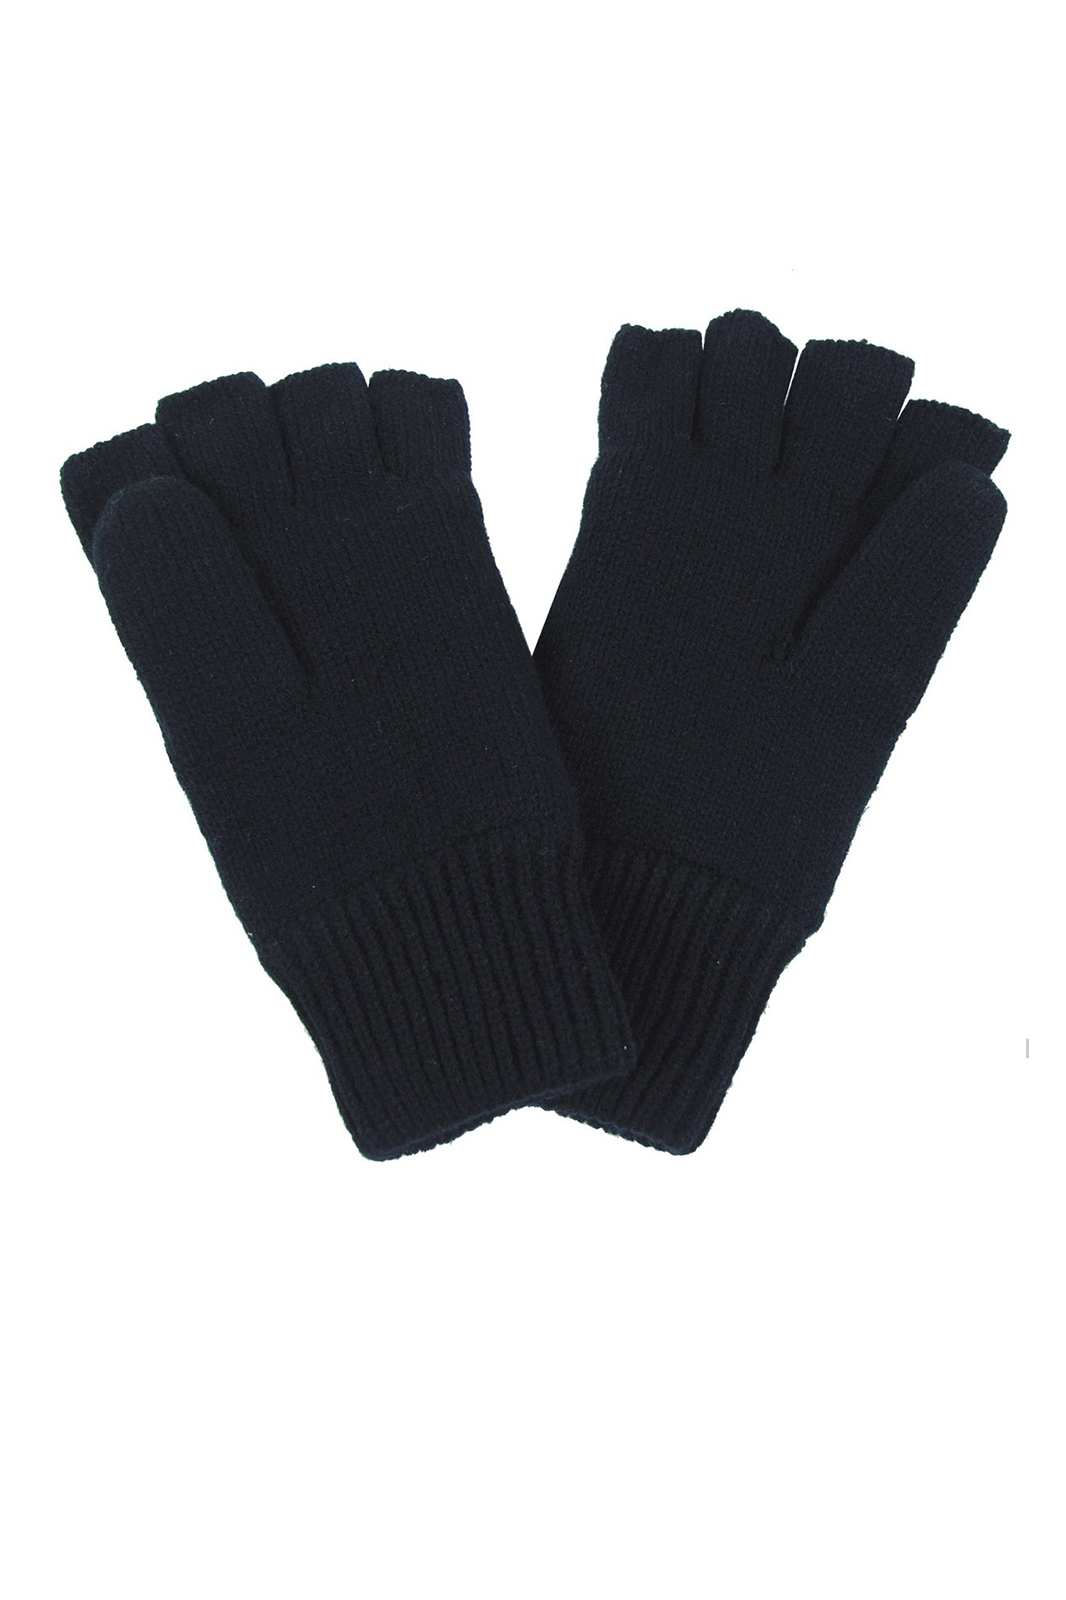 Knitted Fingerless Gloves Black